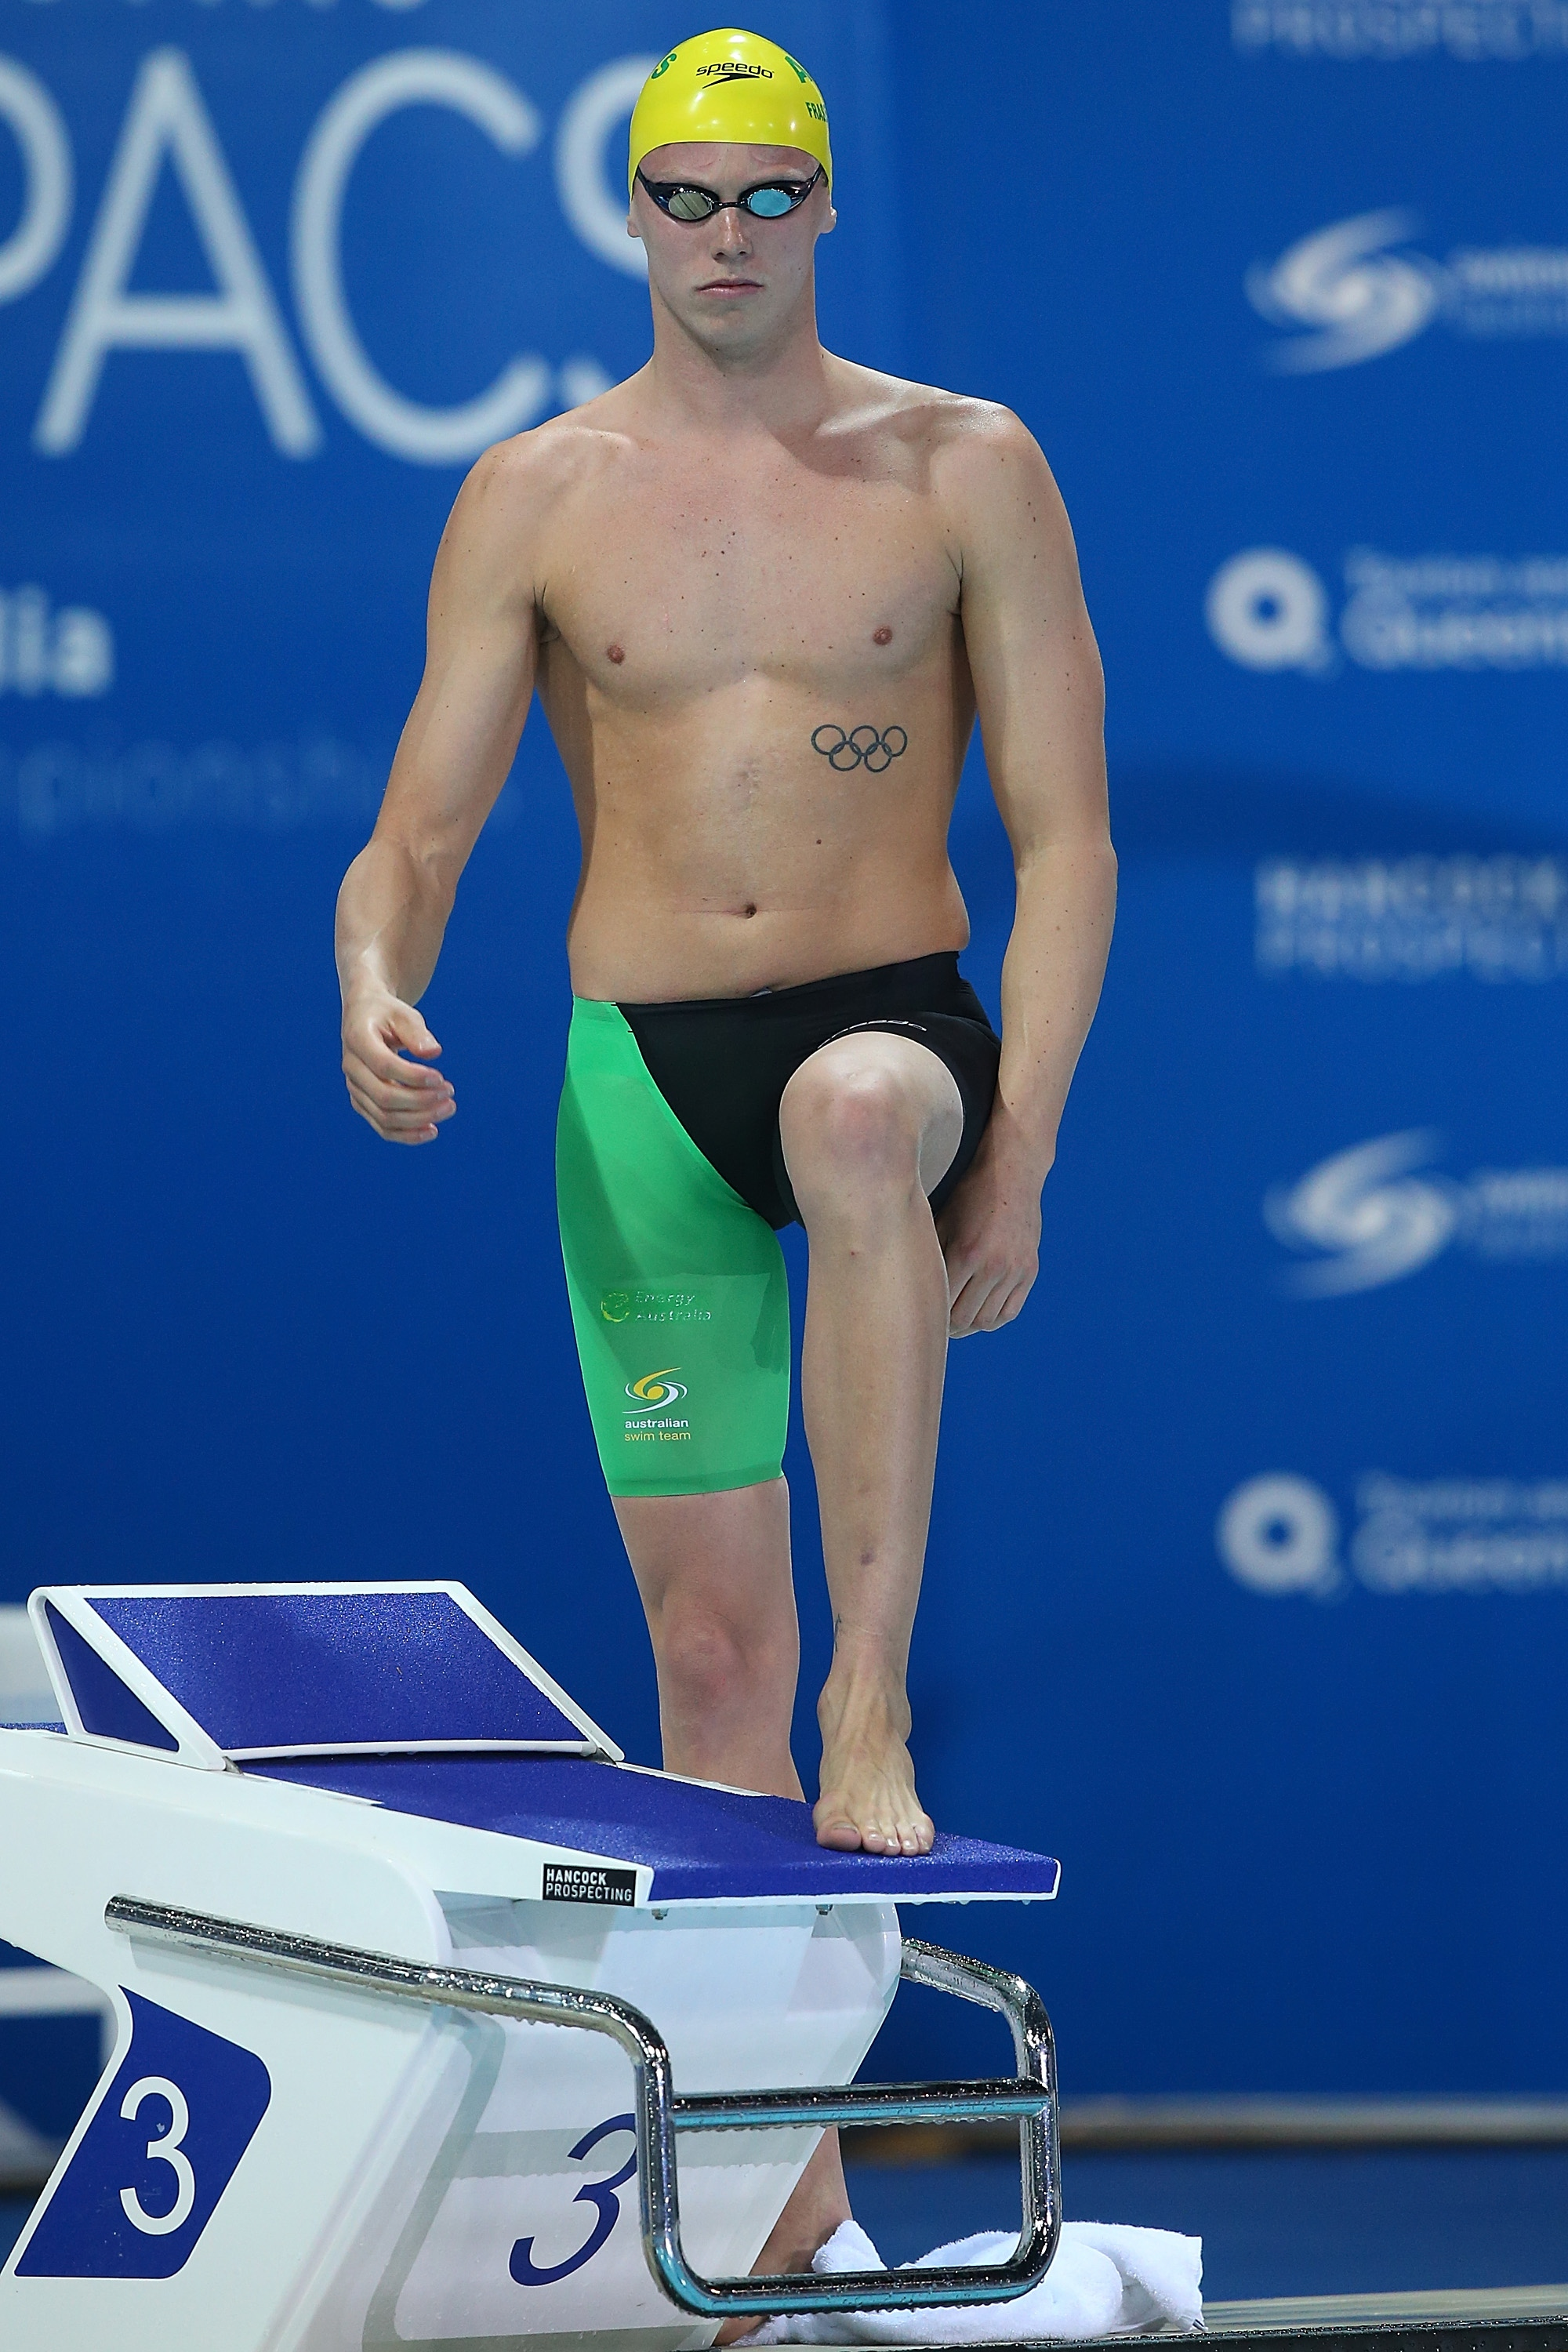 2014 Pan Pacific Championships - Day 1